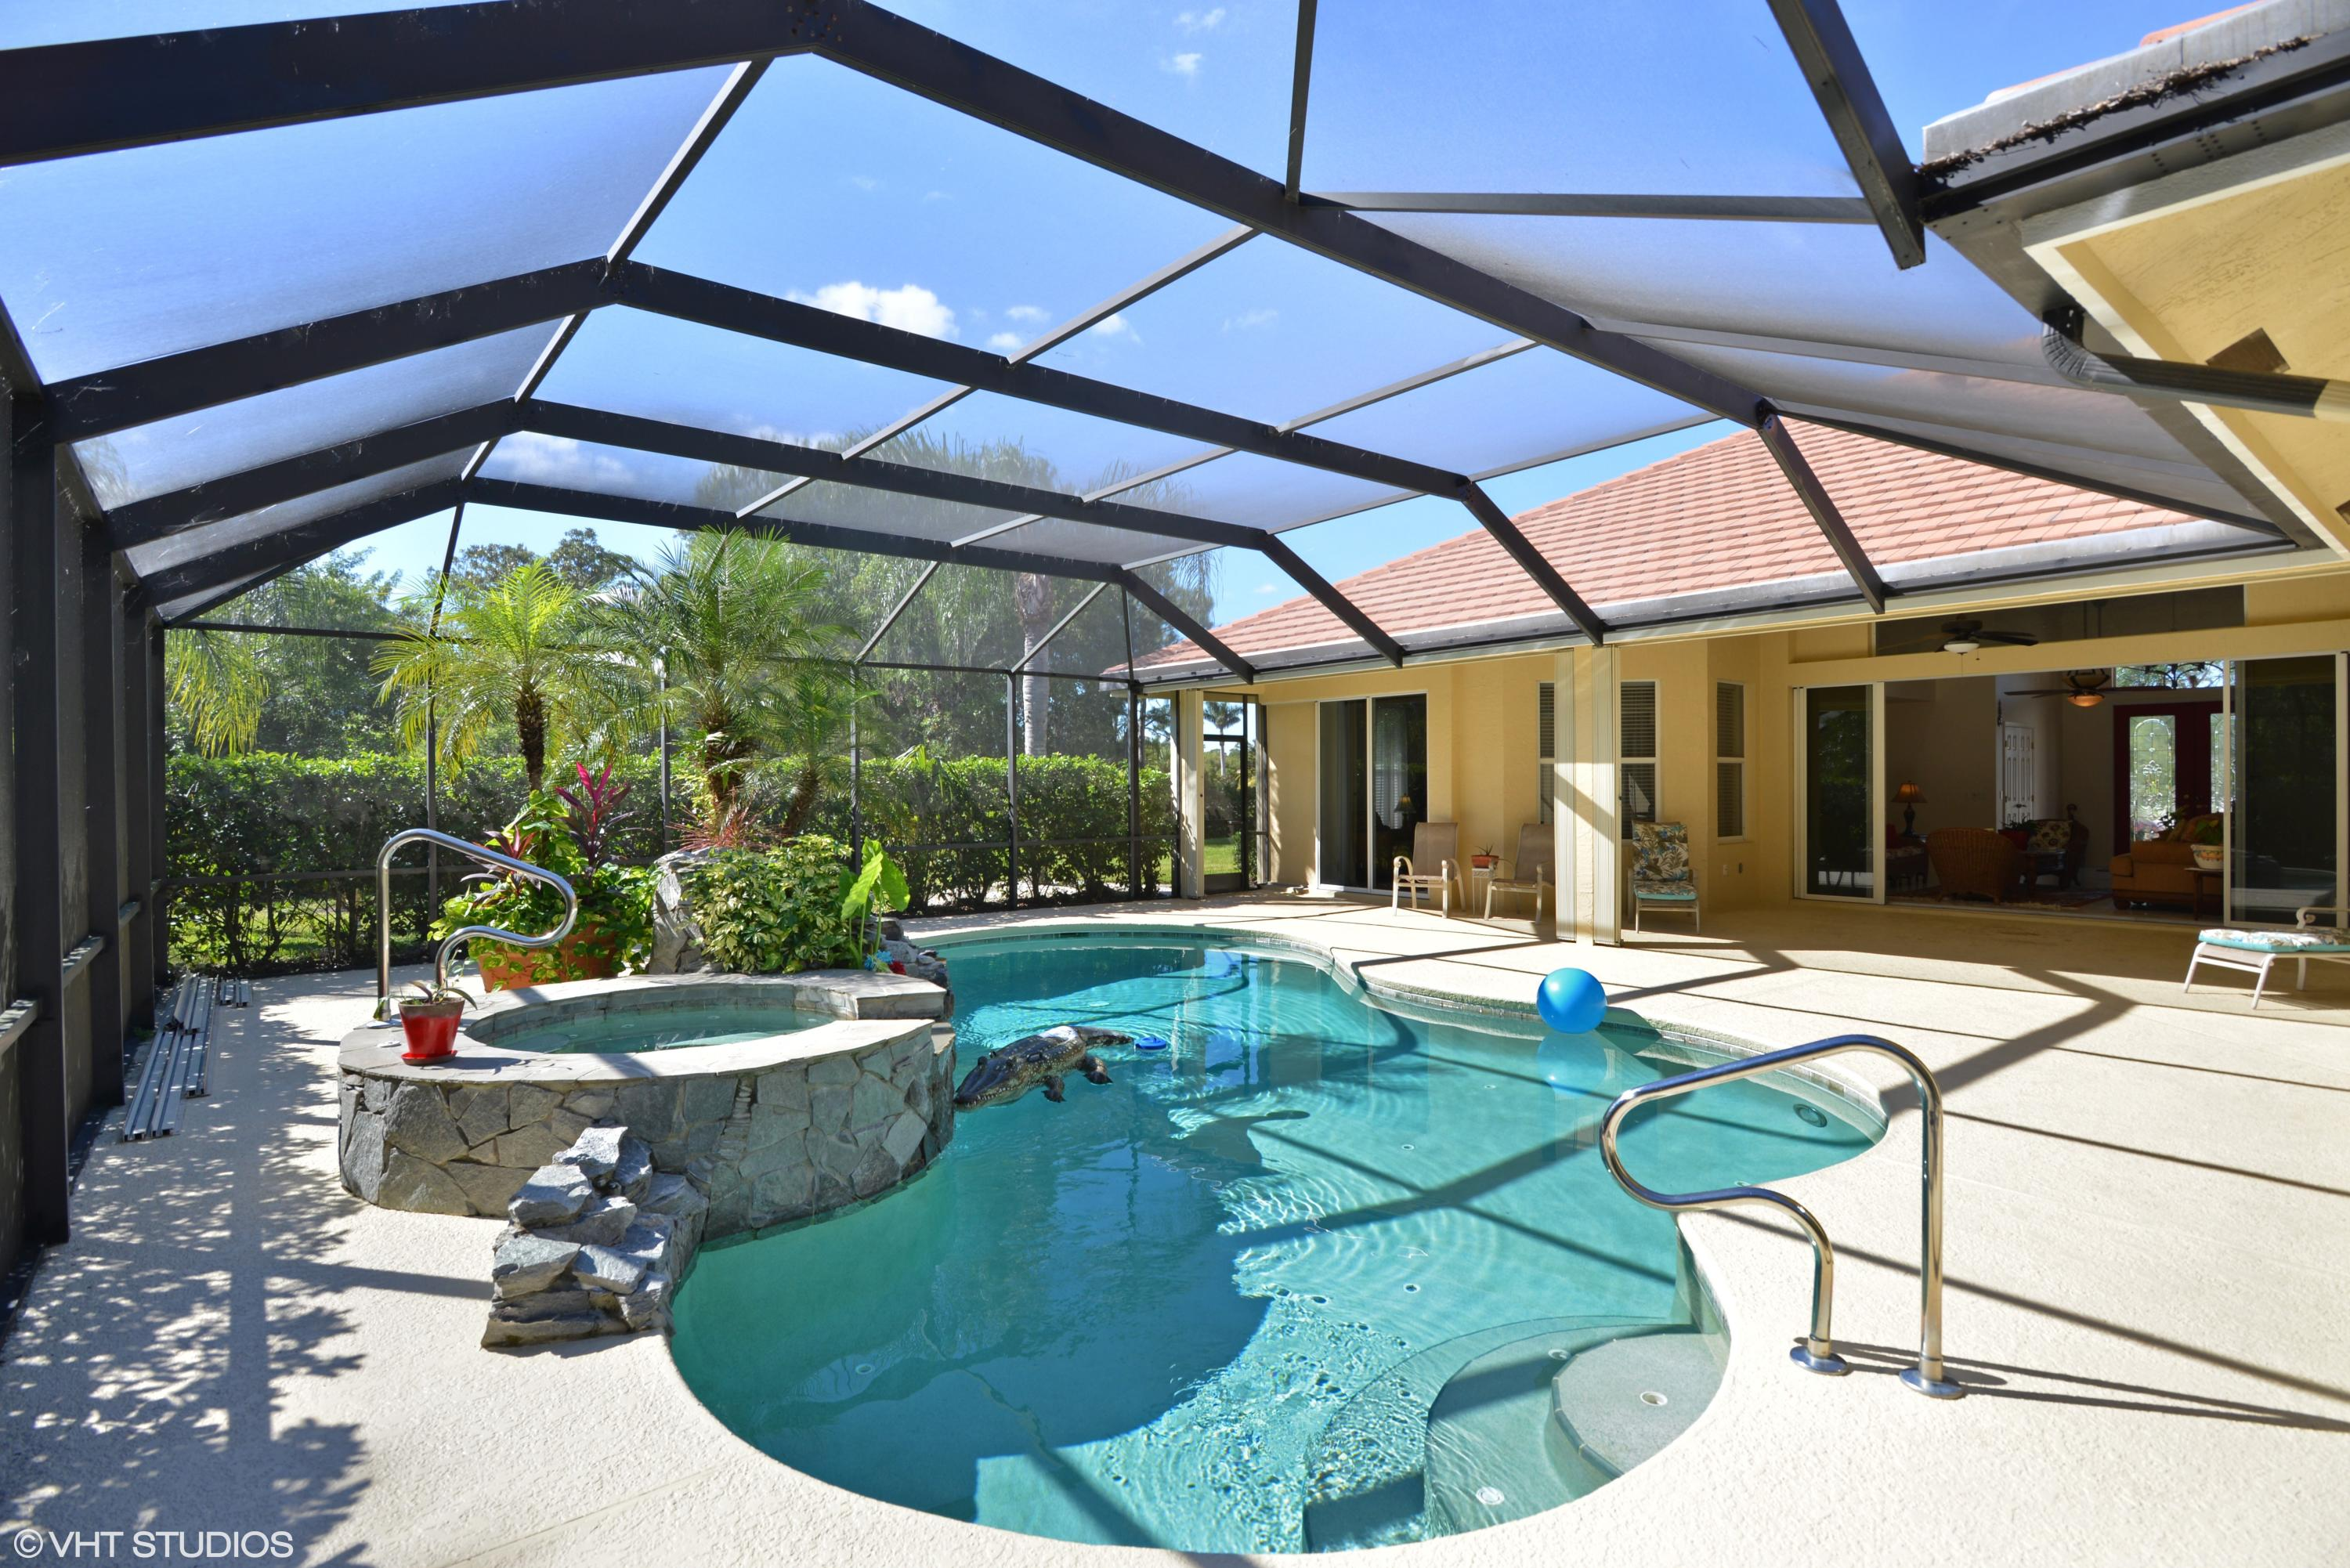 Quick close.Executive home on lush private estate lot. Large covered screened lanai, heated pool and spa with slate waterfall. CBS construction, 3 bedroom, 3 bath 3 car garage home in PGA Village.  Updates include granite kitchen countertops, subway tile backsplash,  new flat tile roof 2017, interior and exterior painted and much more.HOA includes the Island Club at PGA Village with pool, exercise room, tennis, pickleball, basketball, picnic area and social activities. PGA Village has 3 Champion Golf courses open to the public and several different memberships are available plus the private Legacy Golf Course. (Golf membership is not mandatory.) Only minutes from St Lucie West where you can find many restaurants, shopping, movies, bowling, medical facilities. Home of the NY Mets Spring Training. The Treasure Coast has amazing waterways for boating, fishing & beaches and located only 45 minutes to PBI. Looking for offers.